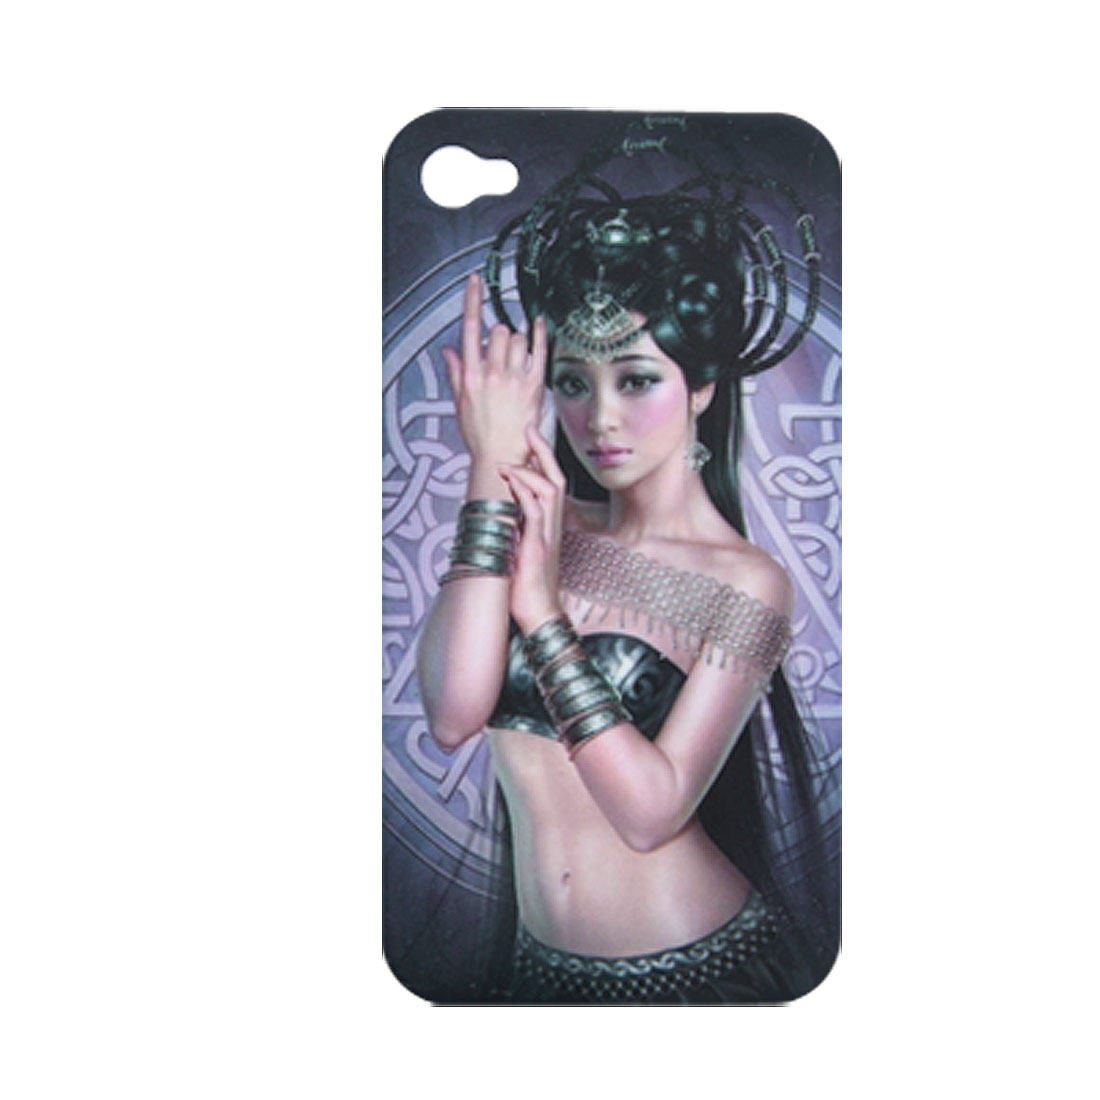 Classical Beauty Pattern Hard Plastic Case for iPhone 4 4G